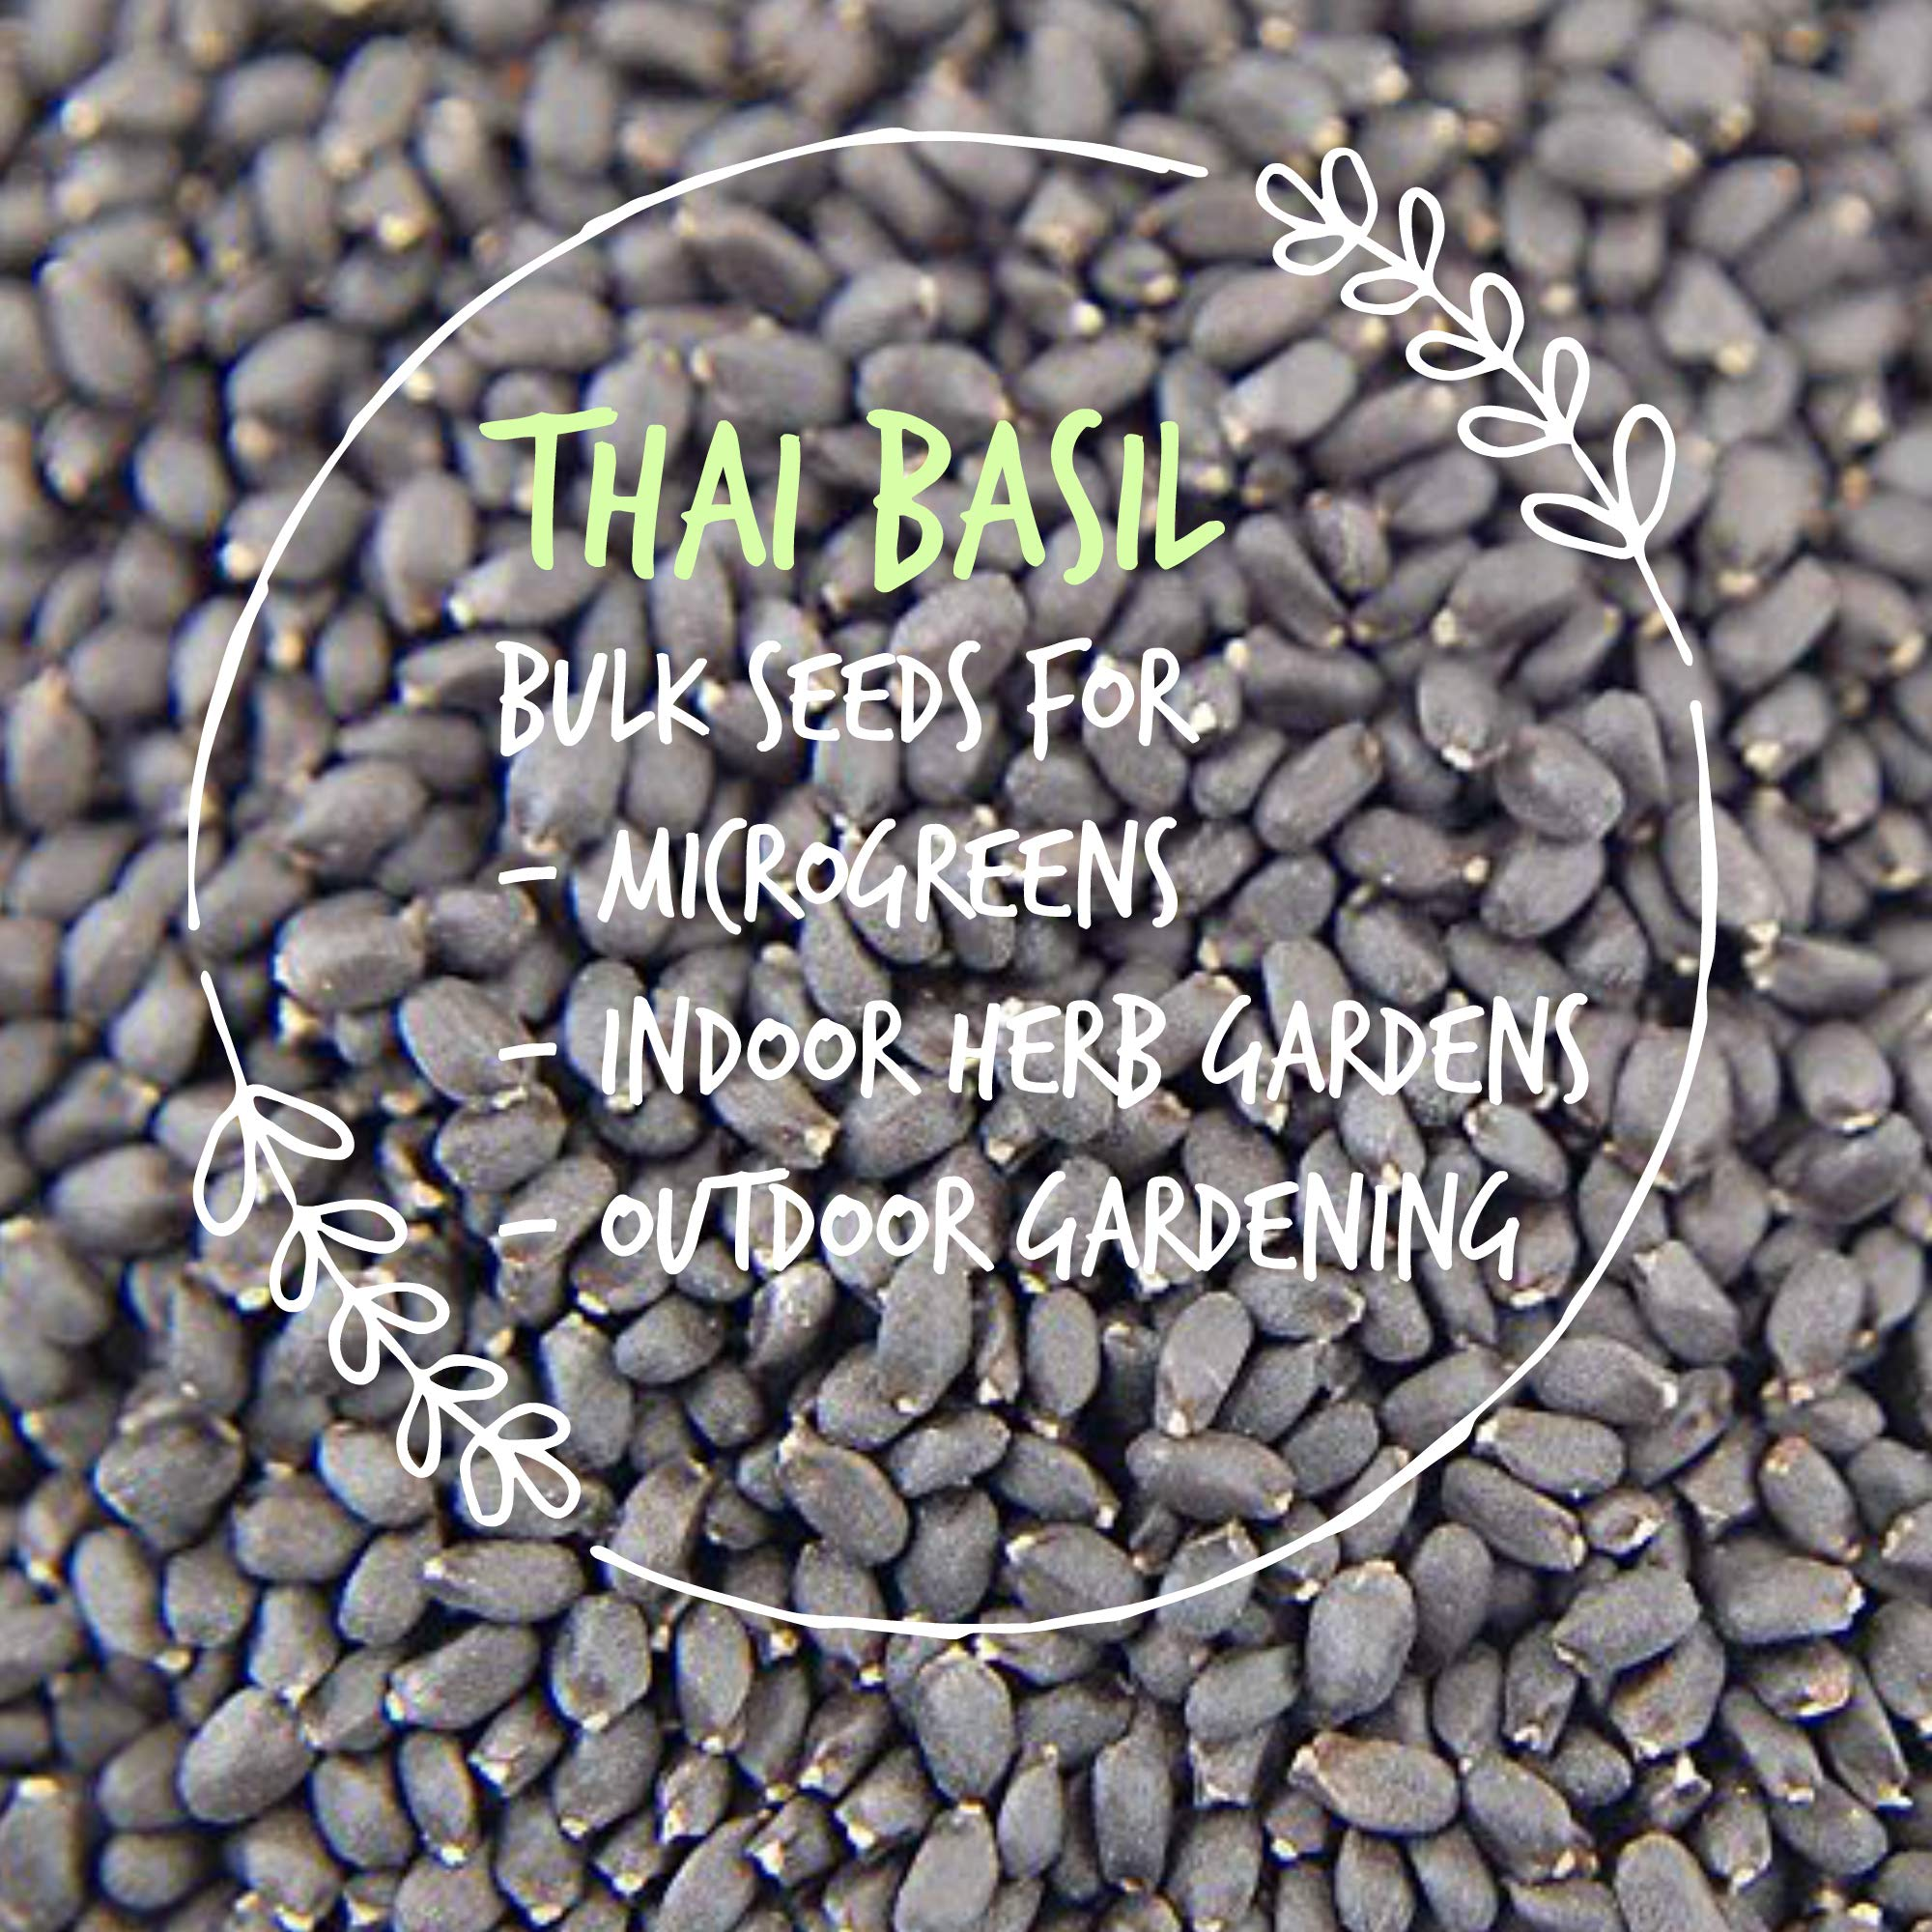 Thai Basil Seeds - Bulk Herb Seeds for Growing Microgreens, Indoor Gardening: Micro Greens Salad (1 Lb) by Mountain Valley Seed Company (Image #4)